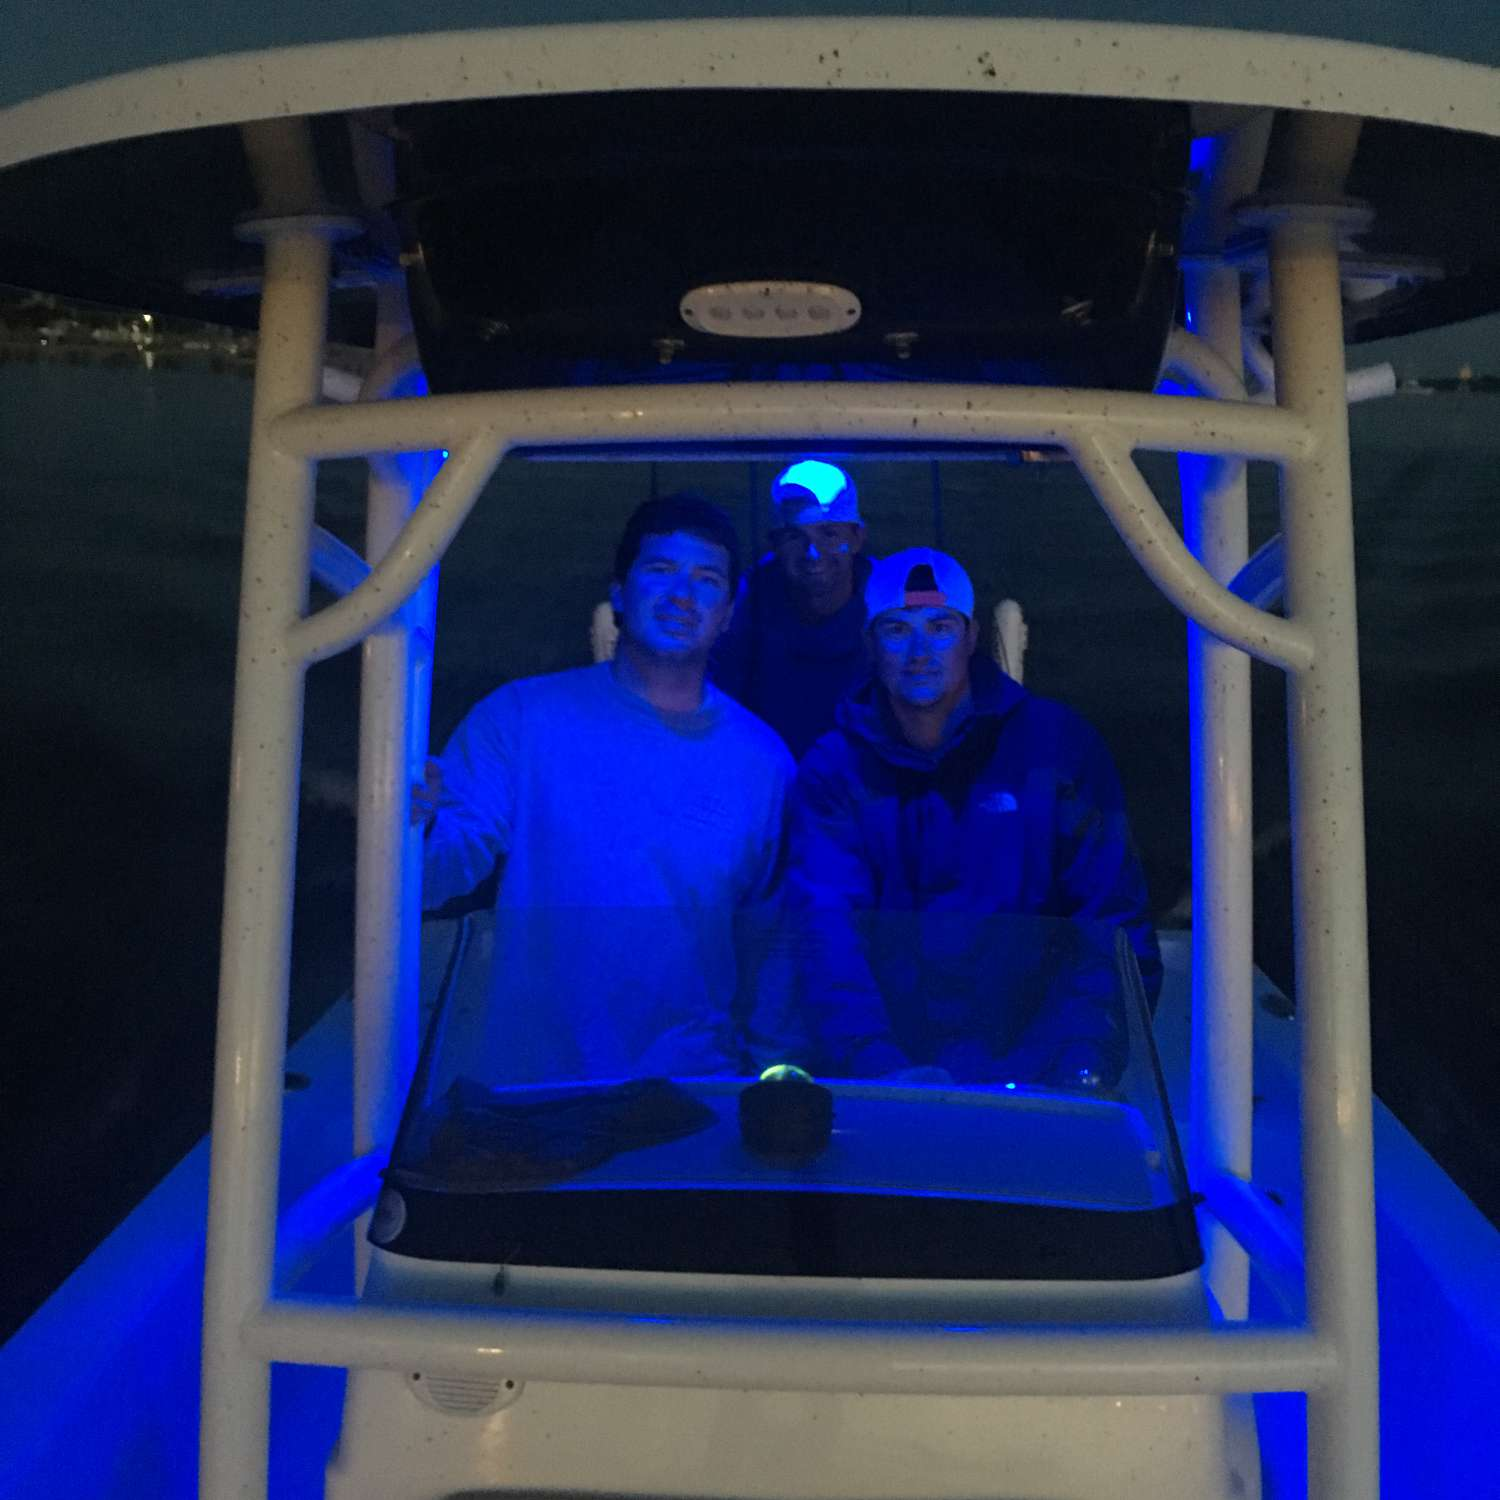 Title: Night Lights Please! - On board their Sportsman Masters 227 Bay Boat - Location: Auburn, Alabama. Participating in the Photo Contest #SportsmanAugust2017